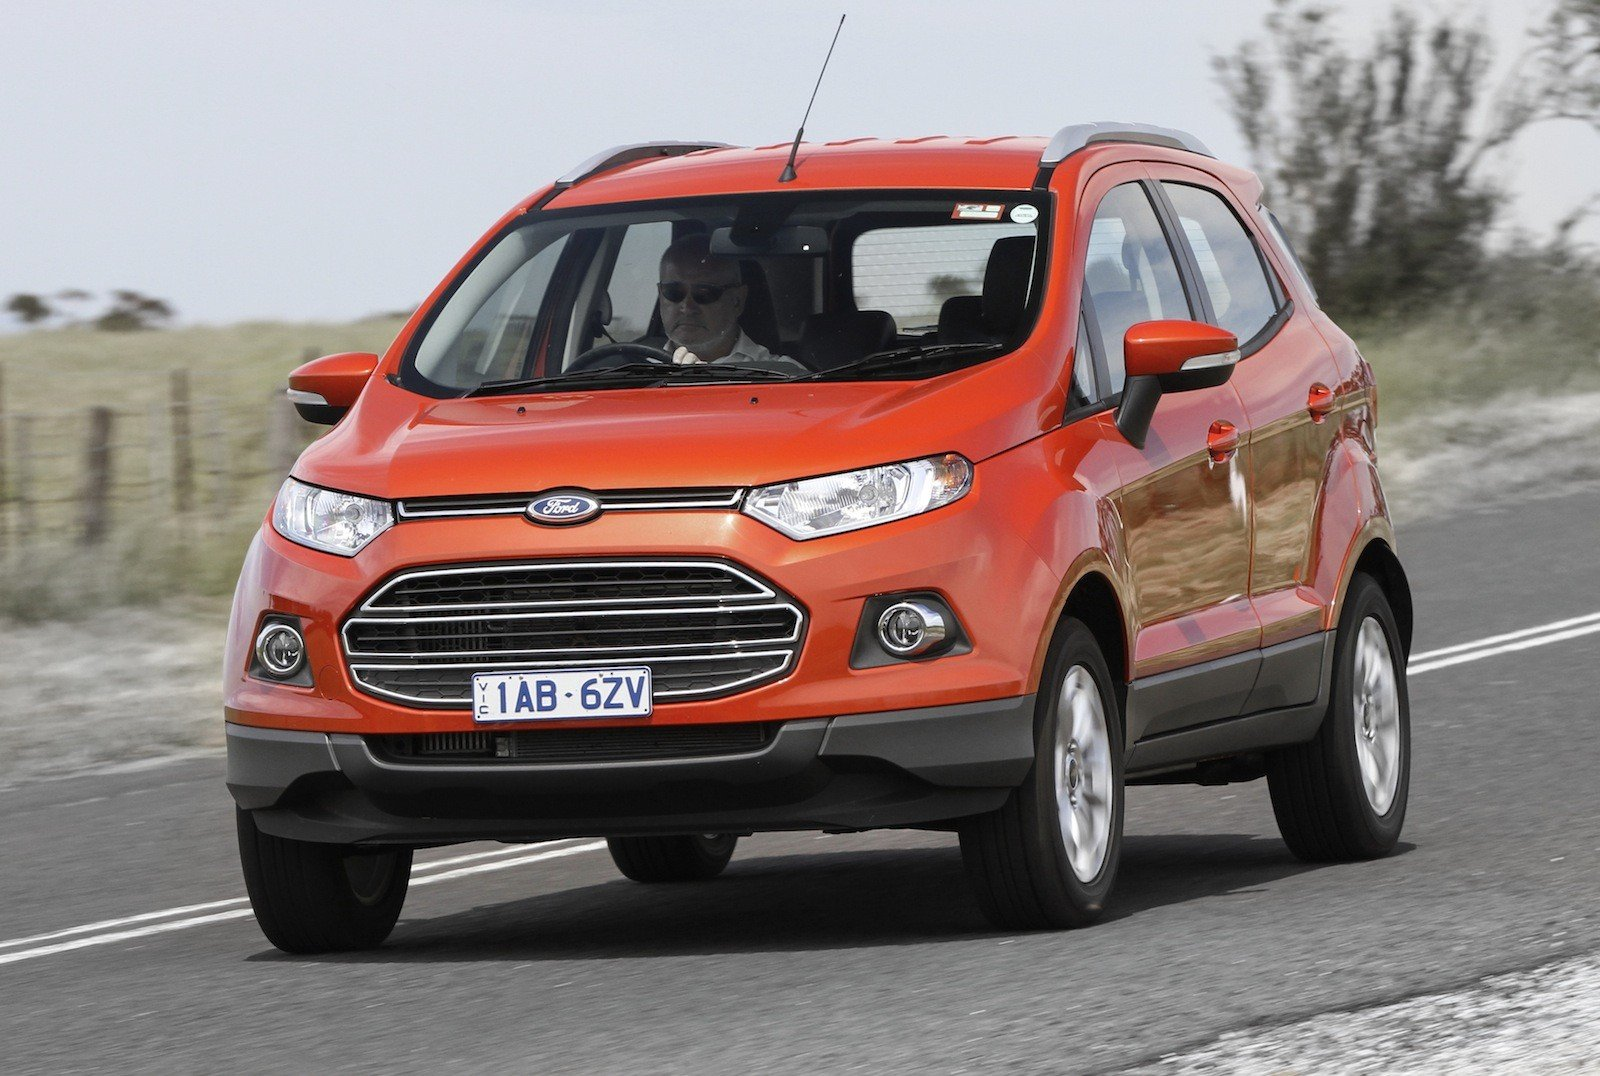 ford ecosport pricing and specifications photos 1 of 8